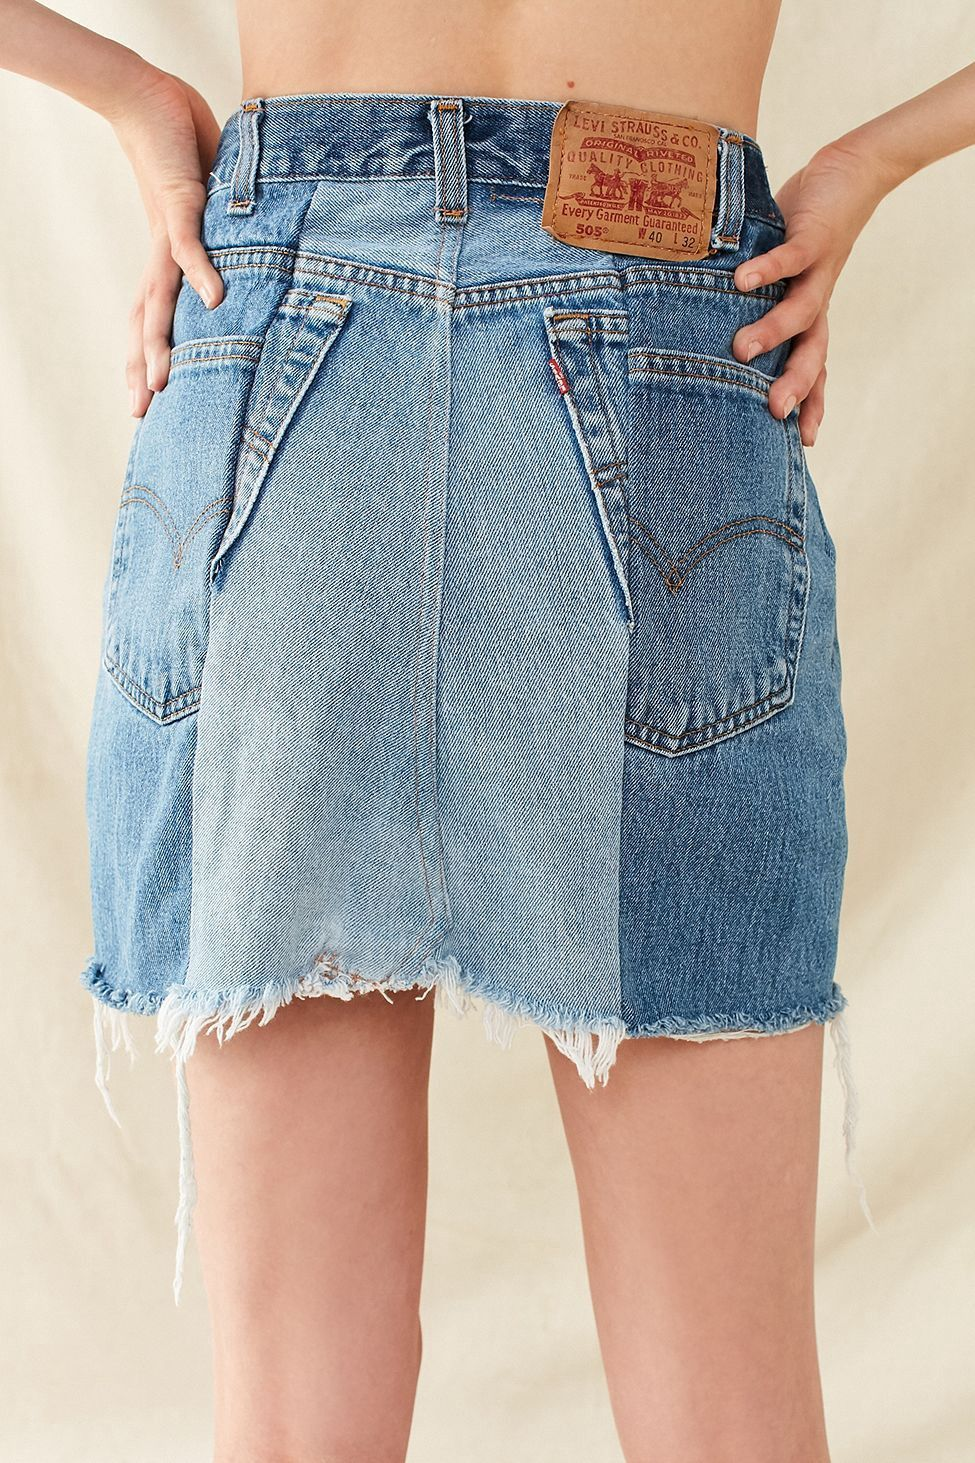 f33970432f Urban Outfitters Renewal Recycled Levi'S Two-Tone Patched Denim Mini Skirt  - Indigo